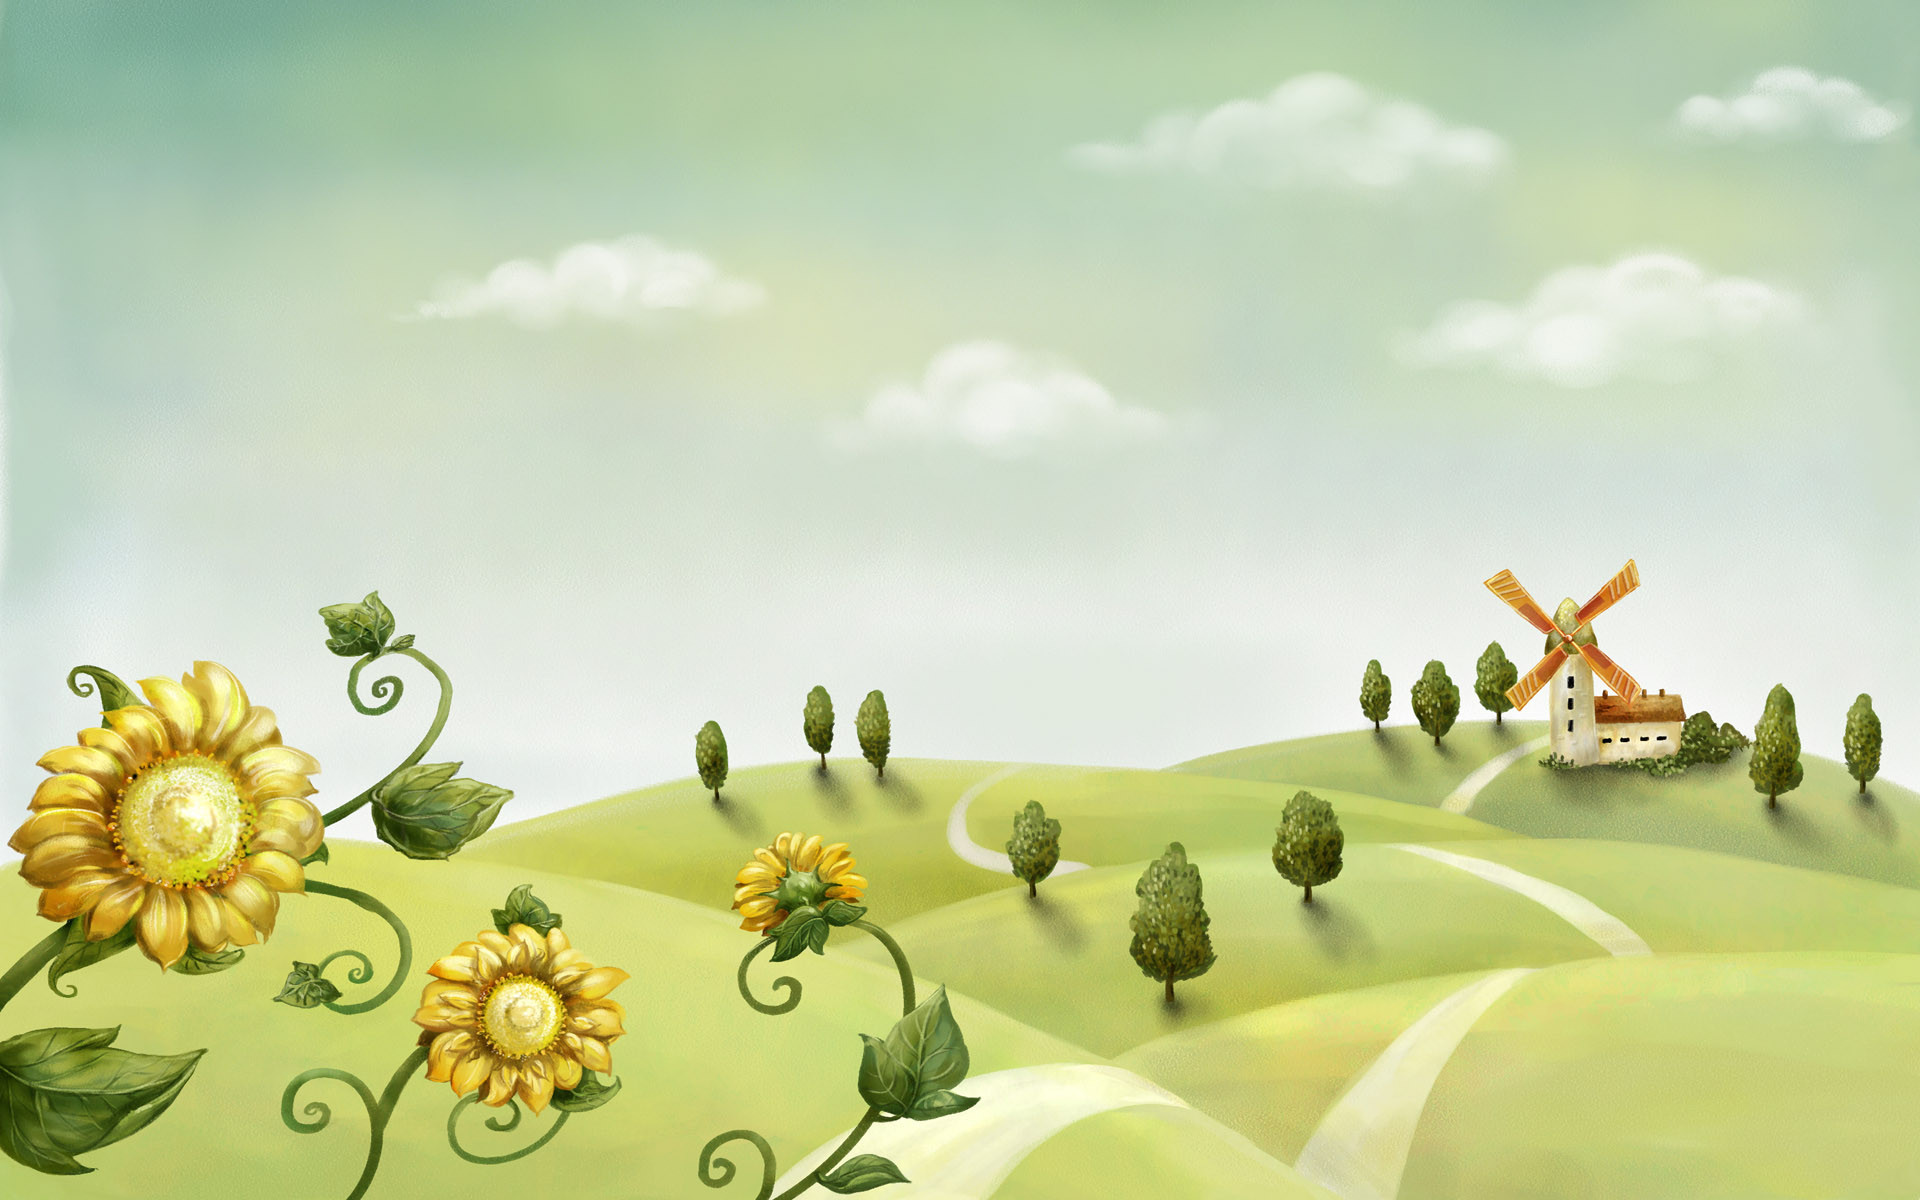 cartoon landscape illustration